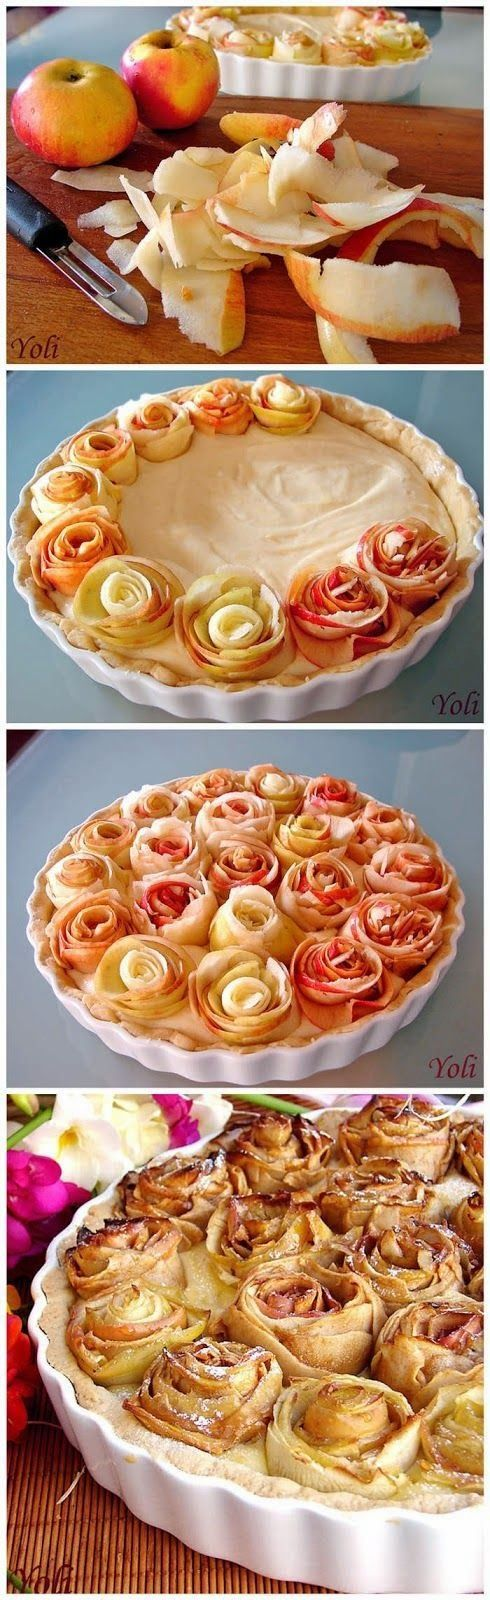 Apple pie with roses | Nosh-up